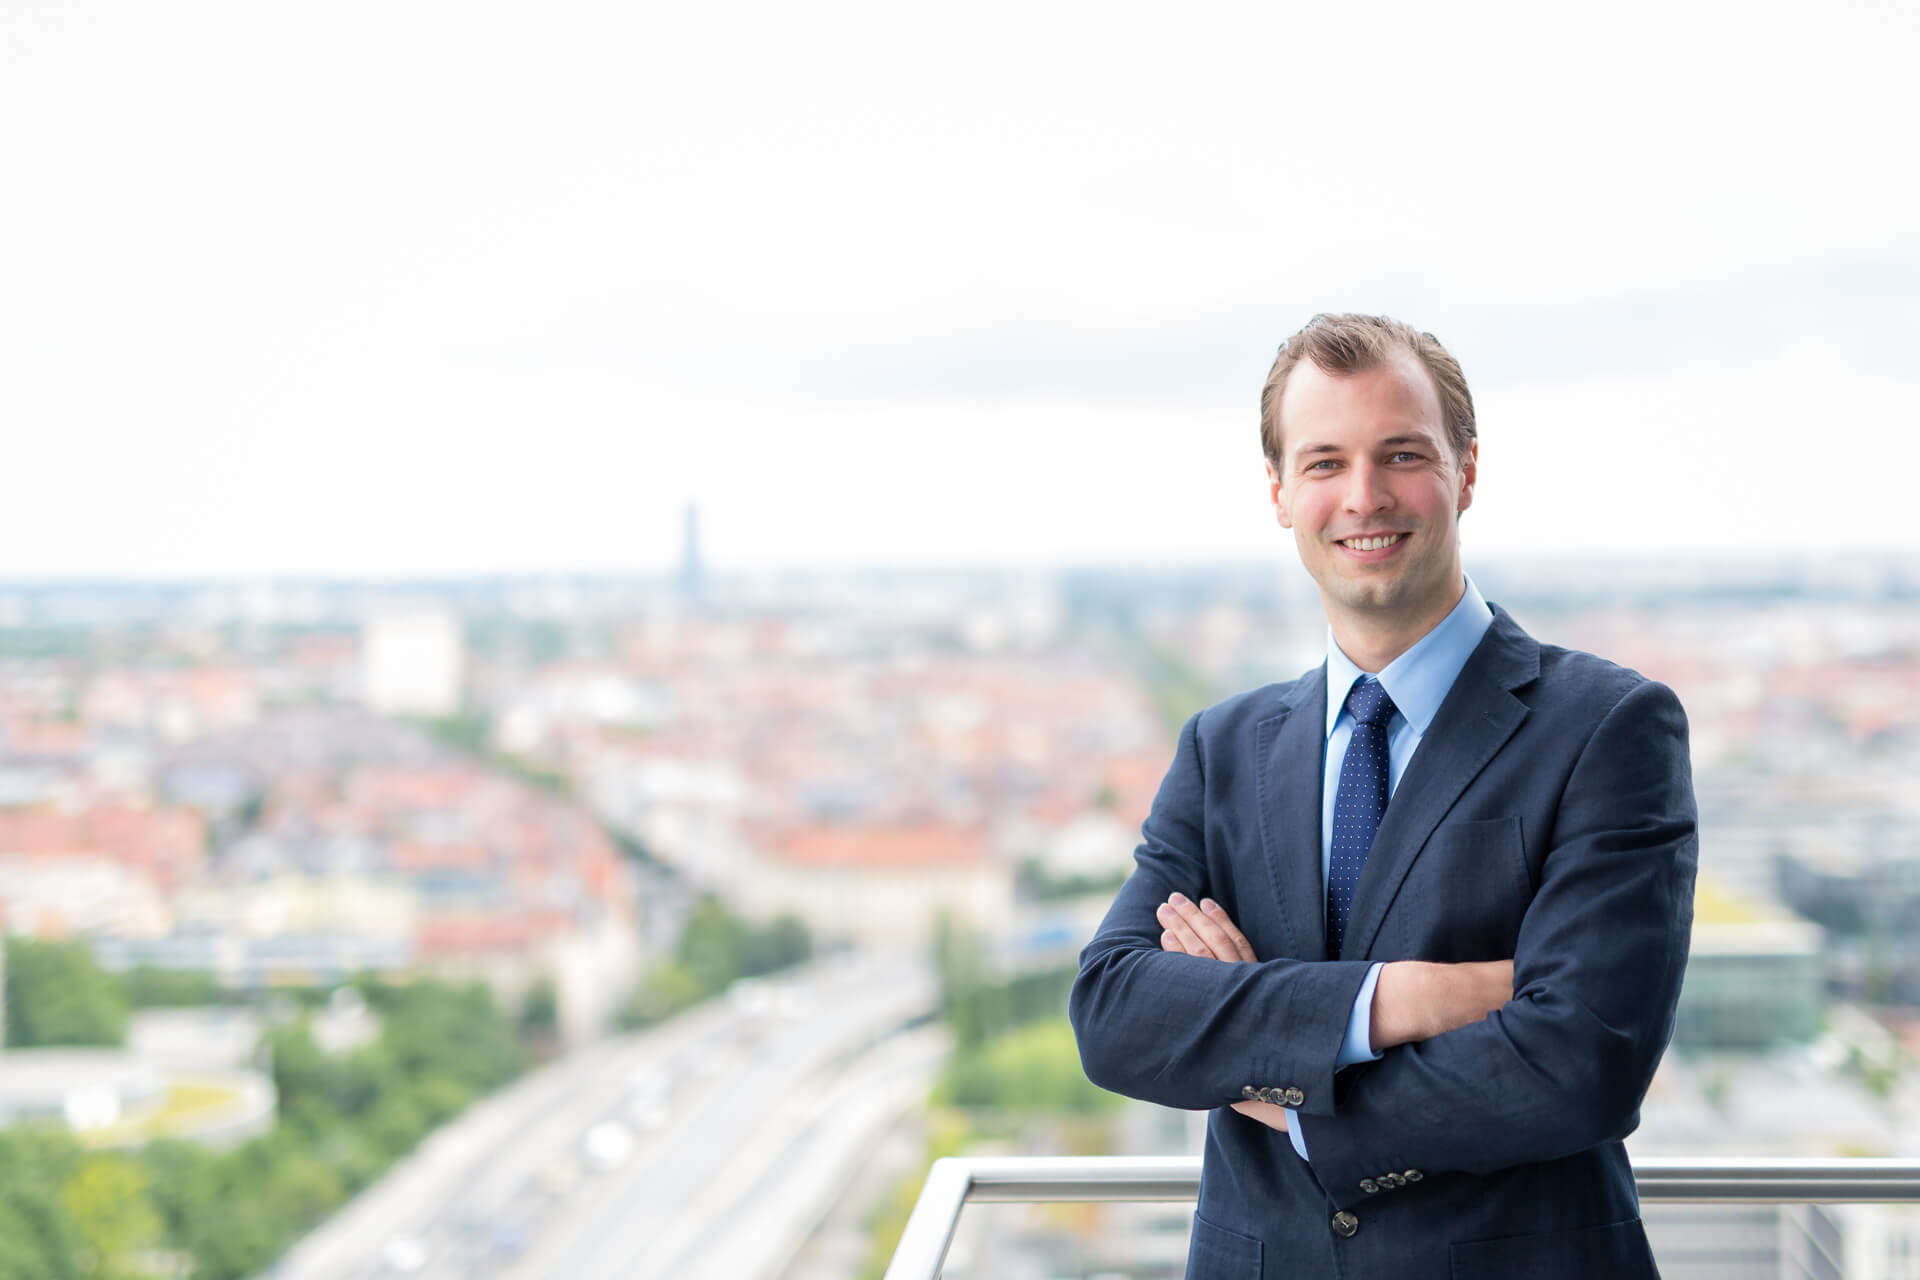 Christian Weber Photo - Business Portrait München